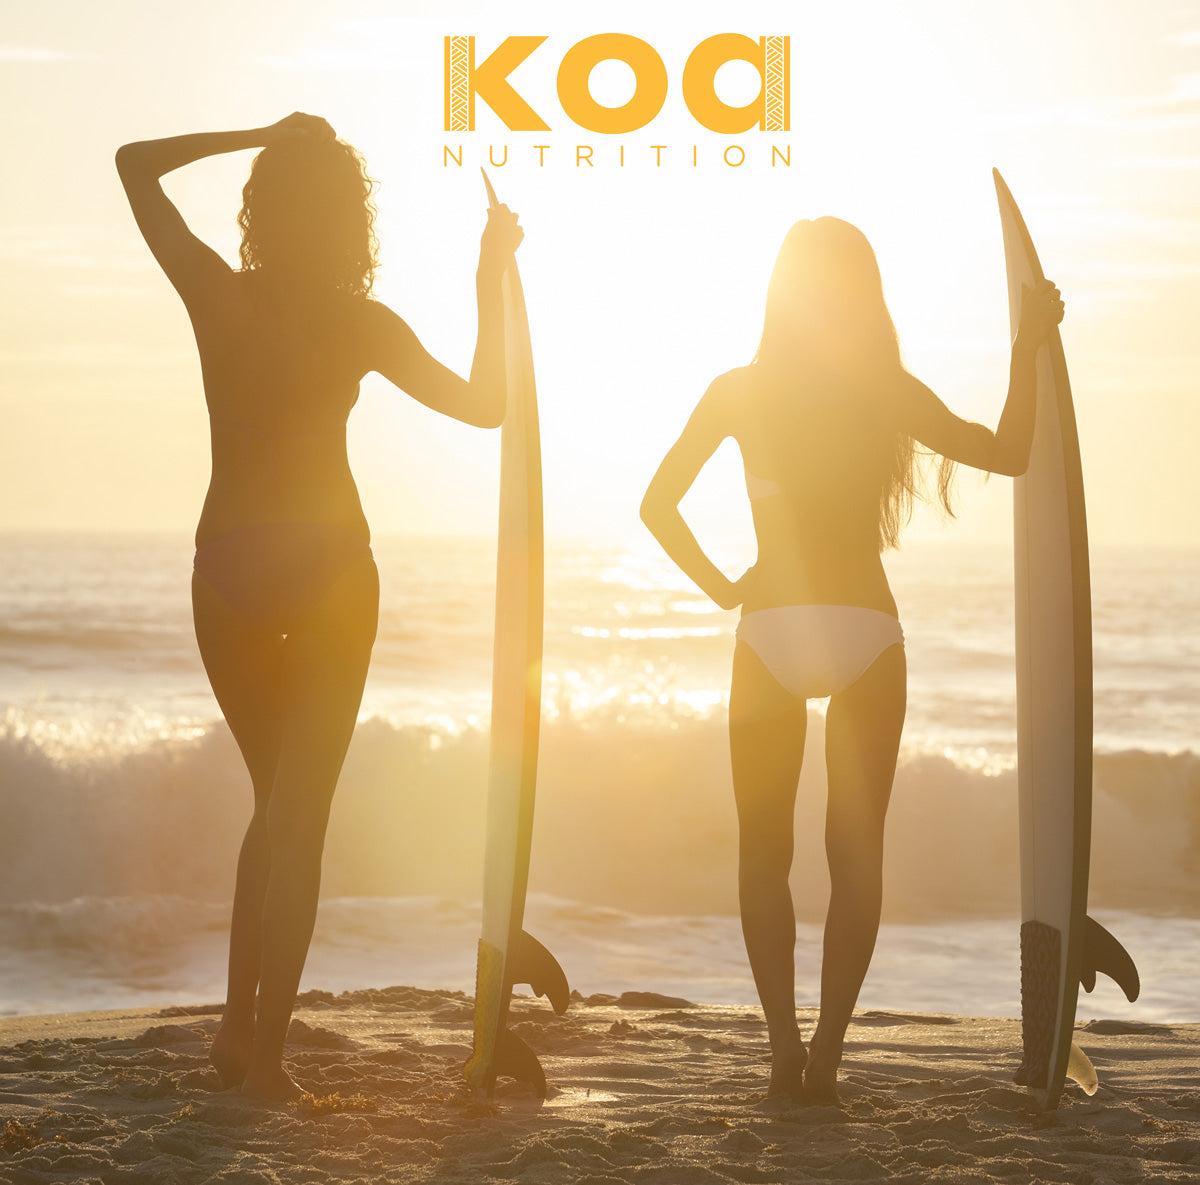 koa nutrition refund cancellation policy